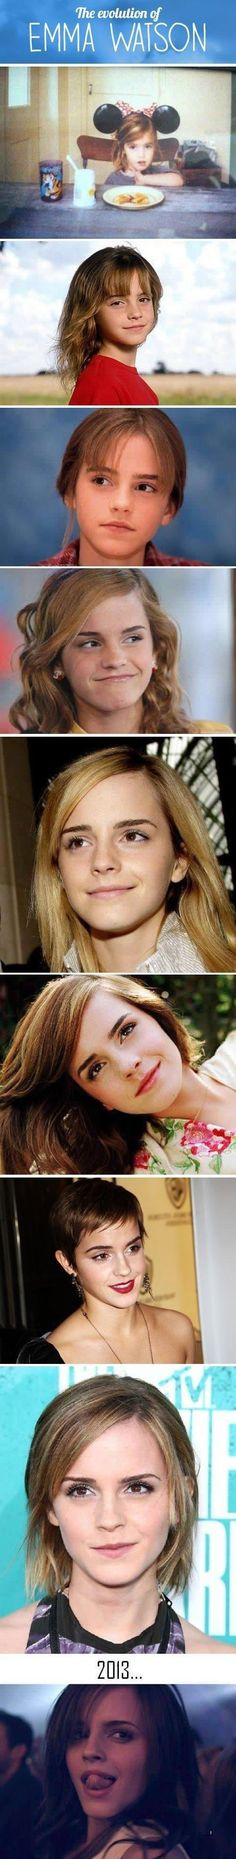 Evolution of Emma Watson